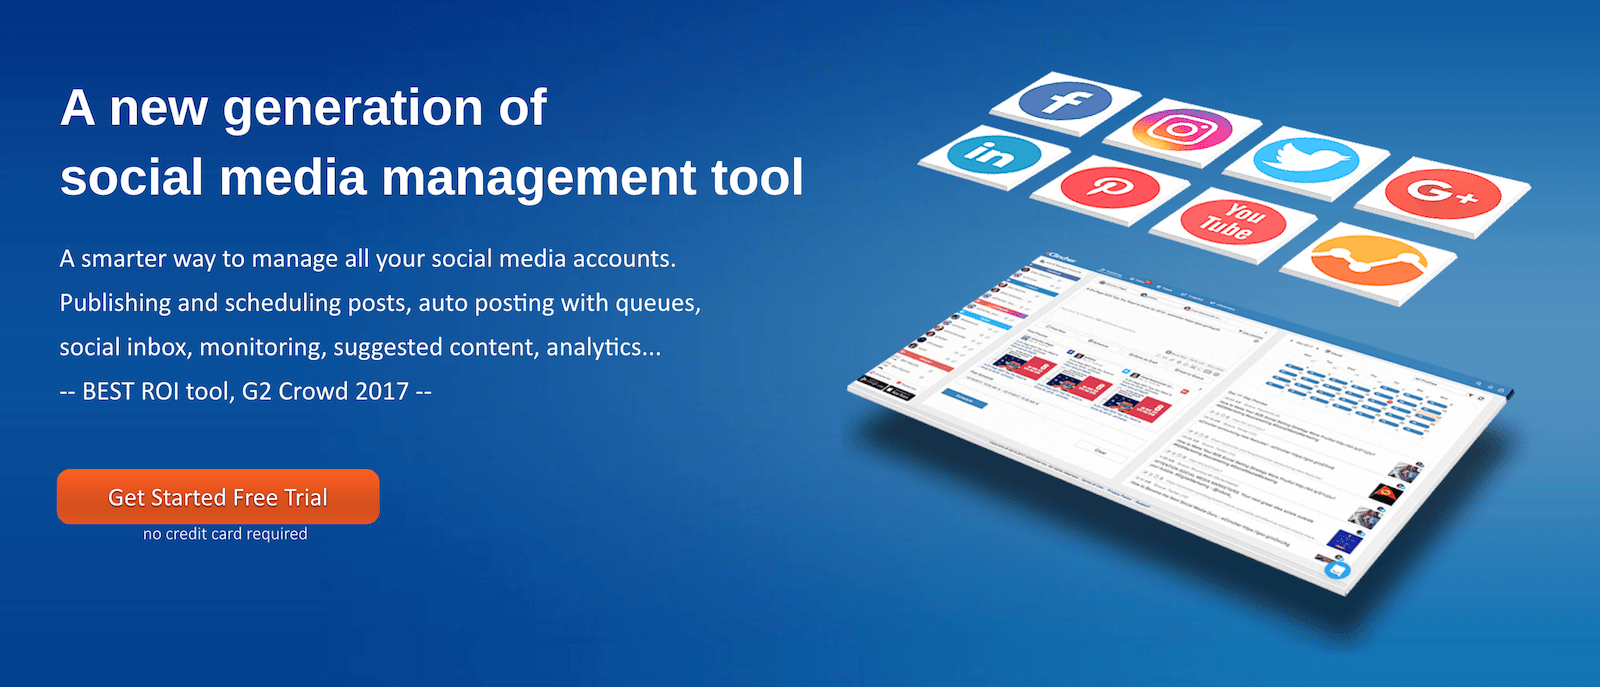 social media management tool with floating social icons